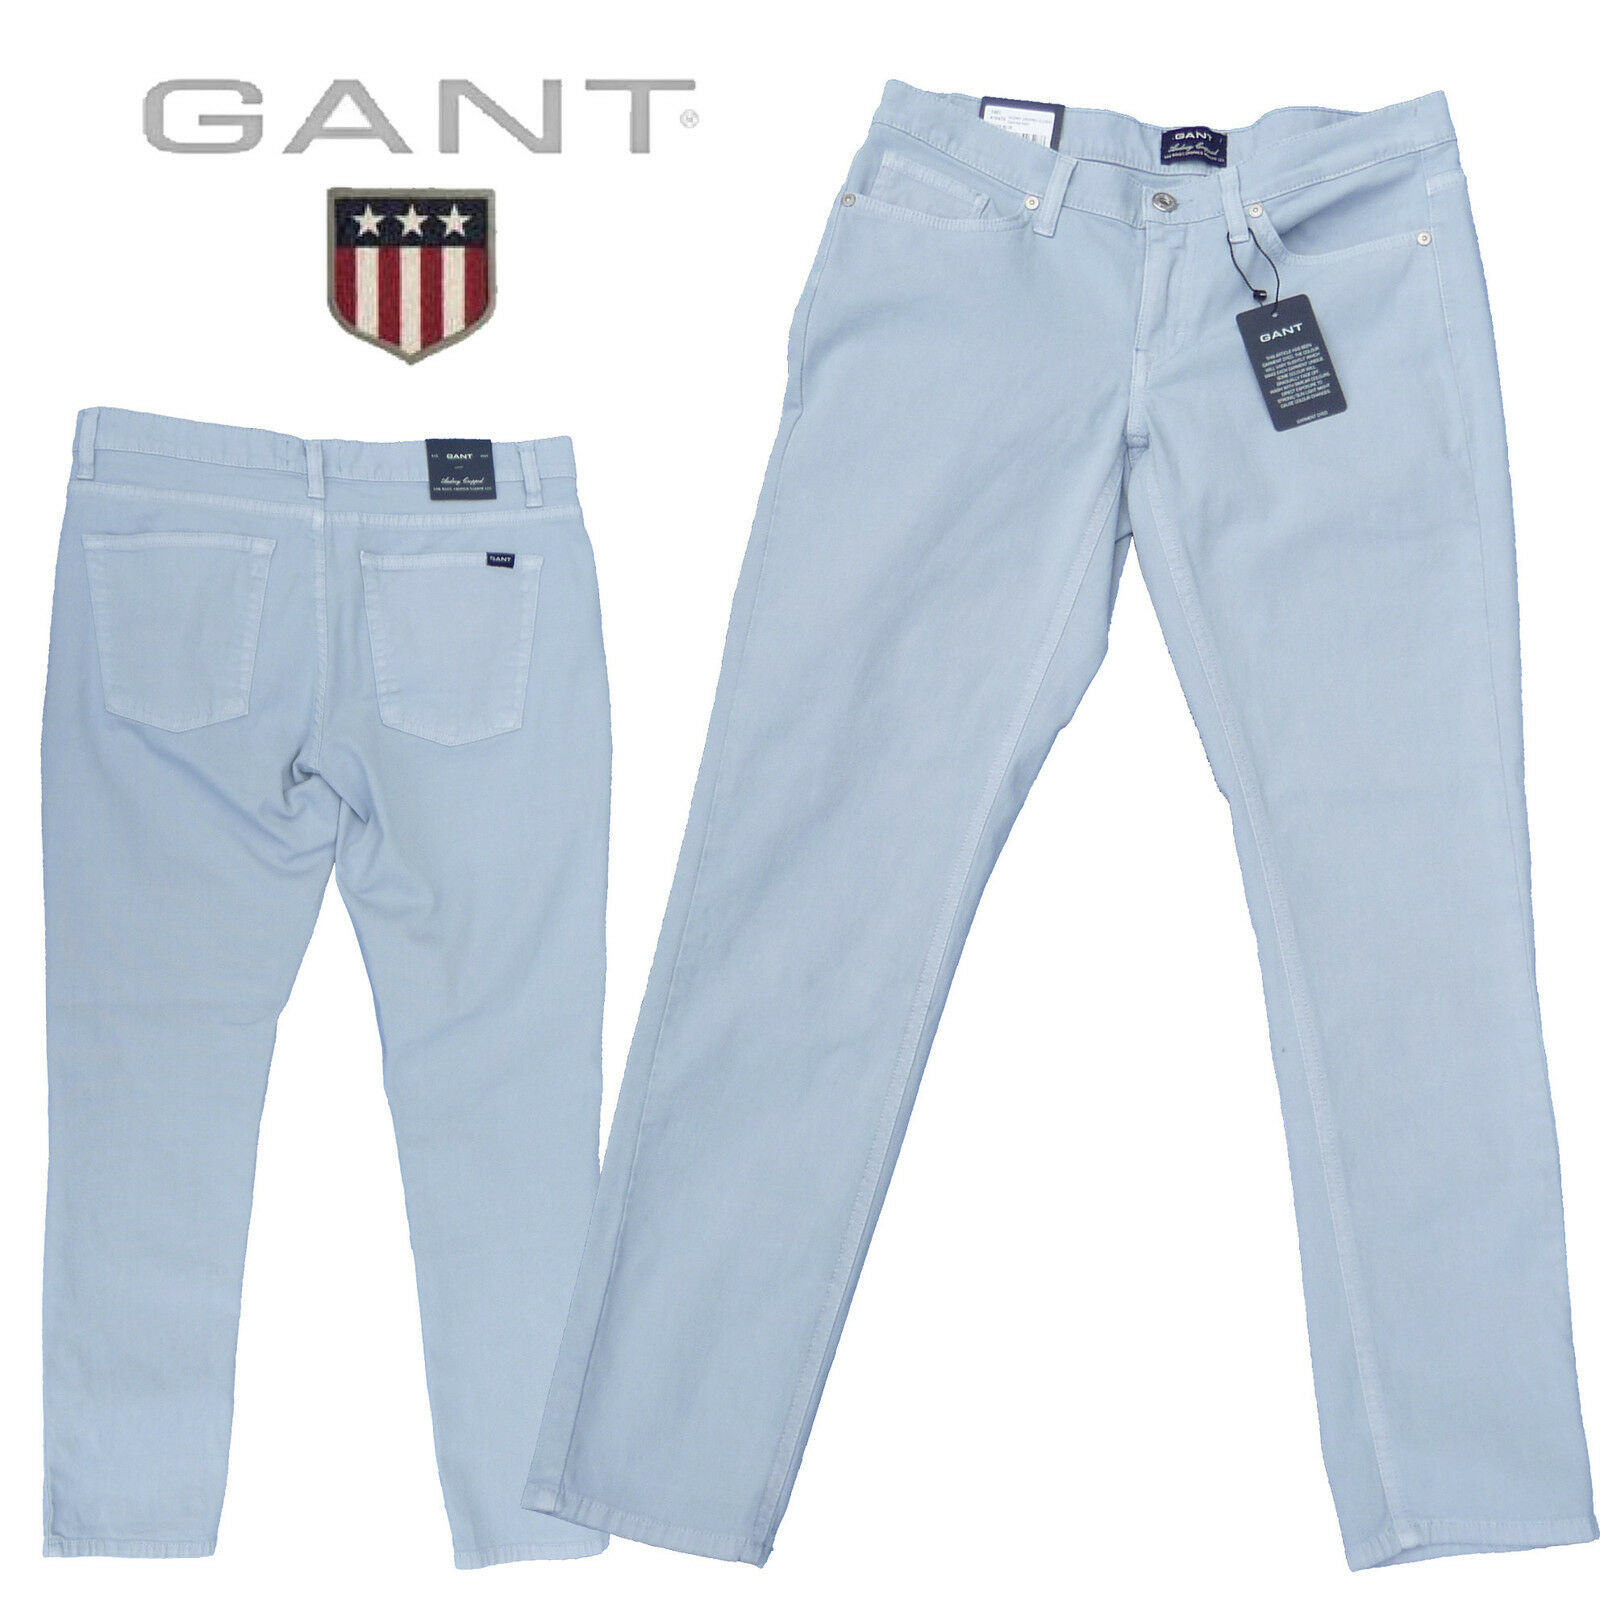 % Gant - Jeans Audrey cropped classic canvas pant (7 8 lang) in ice Blau 410475